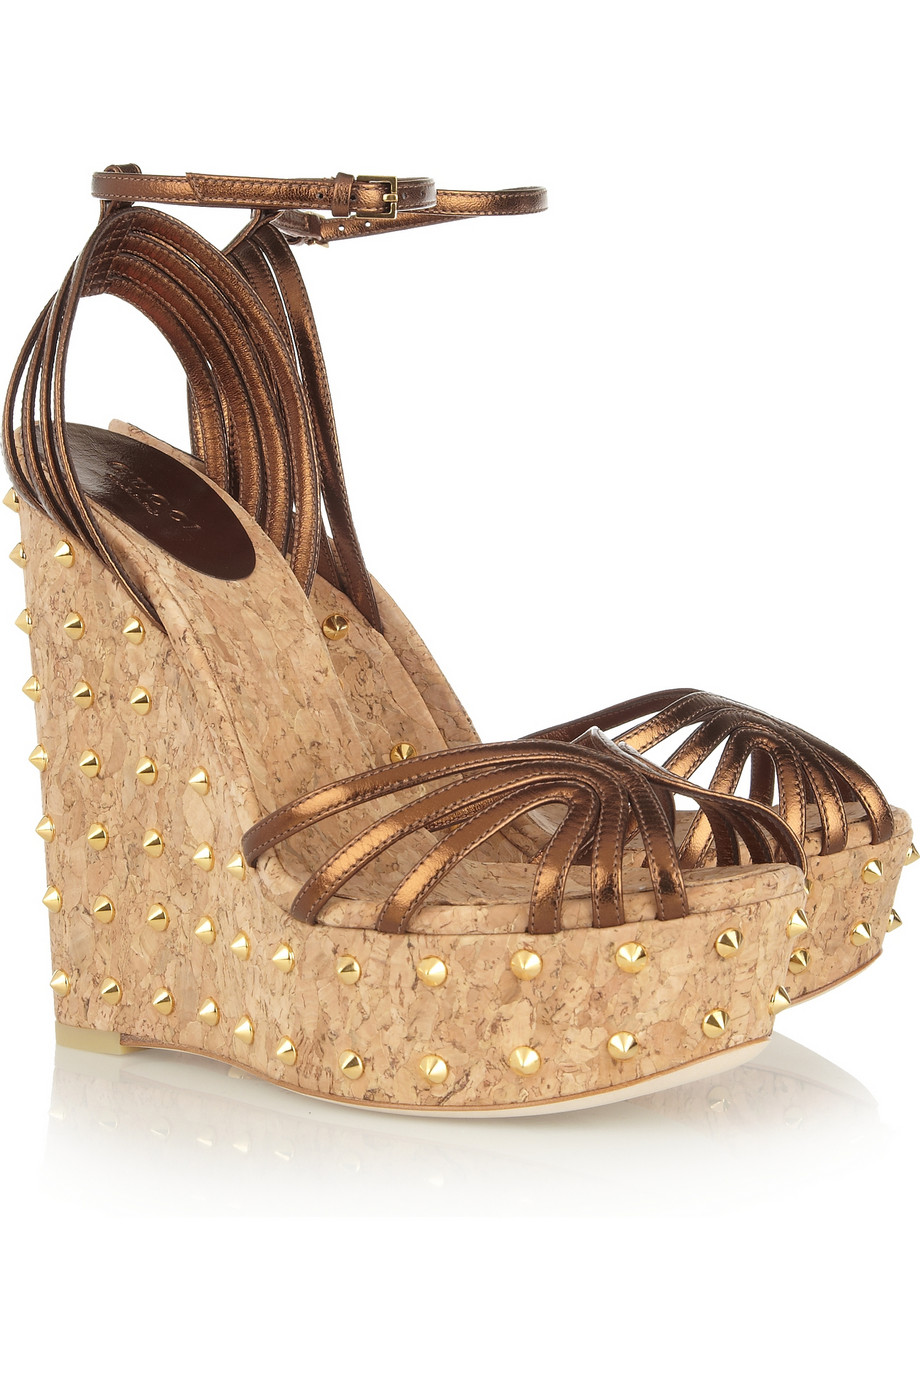 8b30c63465f31 Lyst - Gucci Studded Metallic Leather Platform Sandals in Metallic